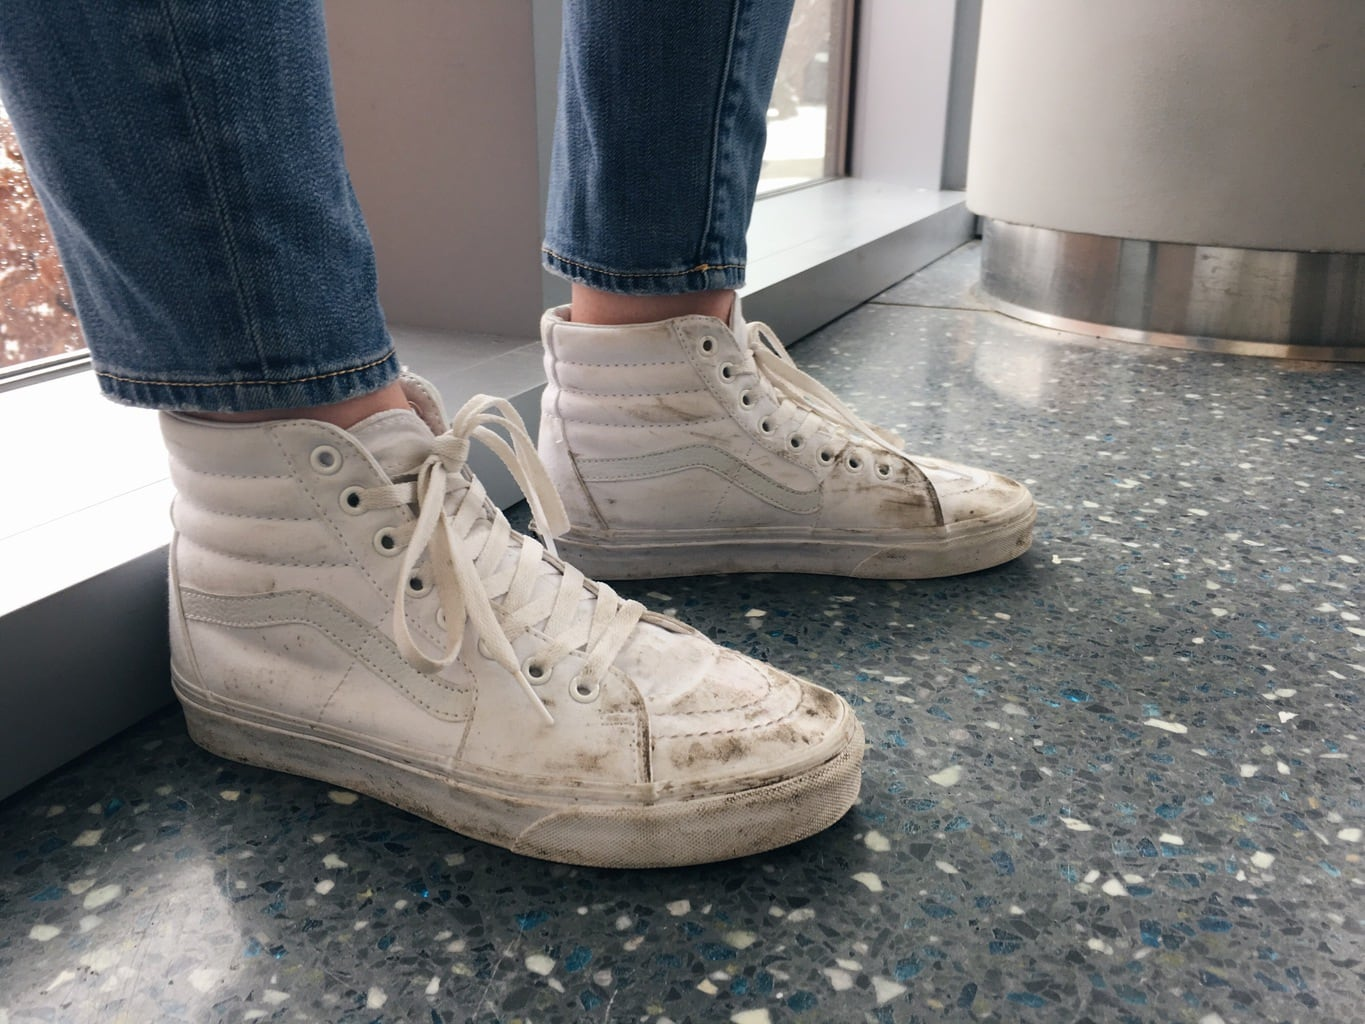 These high-top all white Vans lace-up sneakers are worn-in from walking across campus.